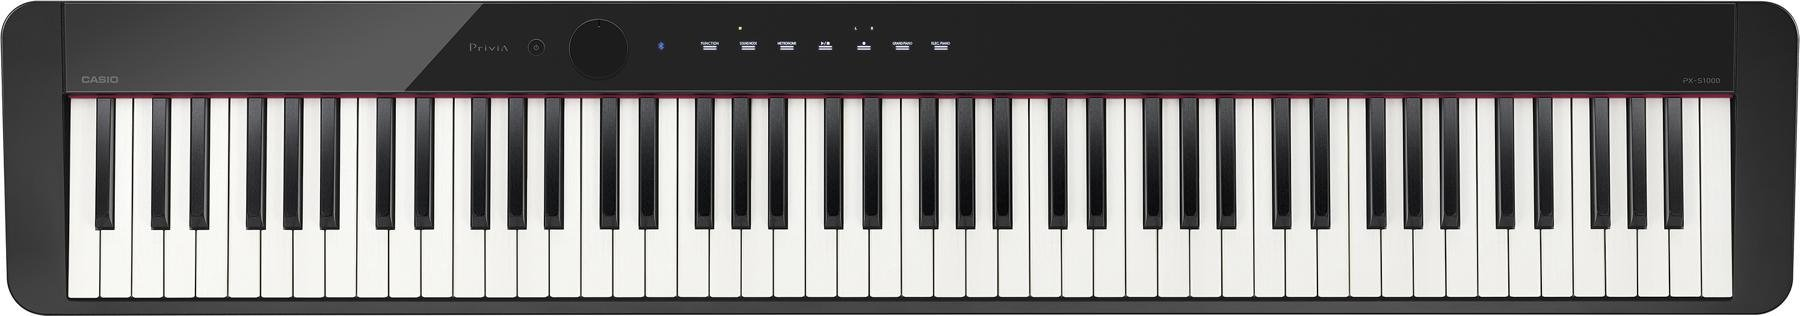 Casio PX-S1000 Privia Series Keyboard